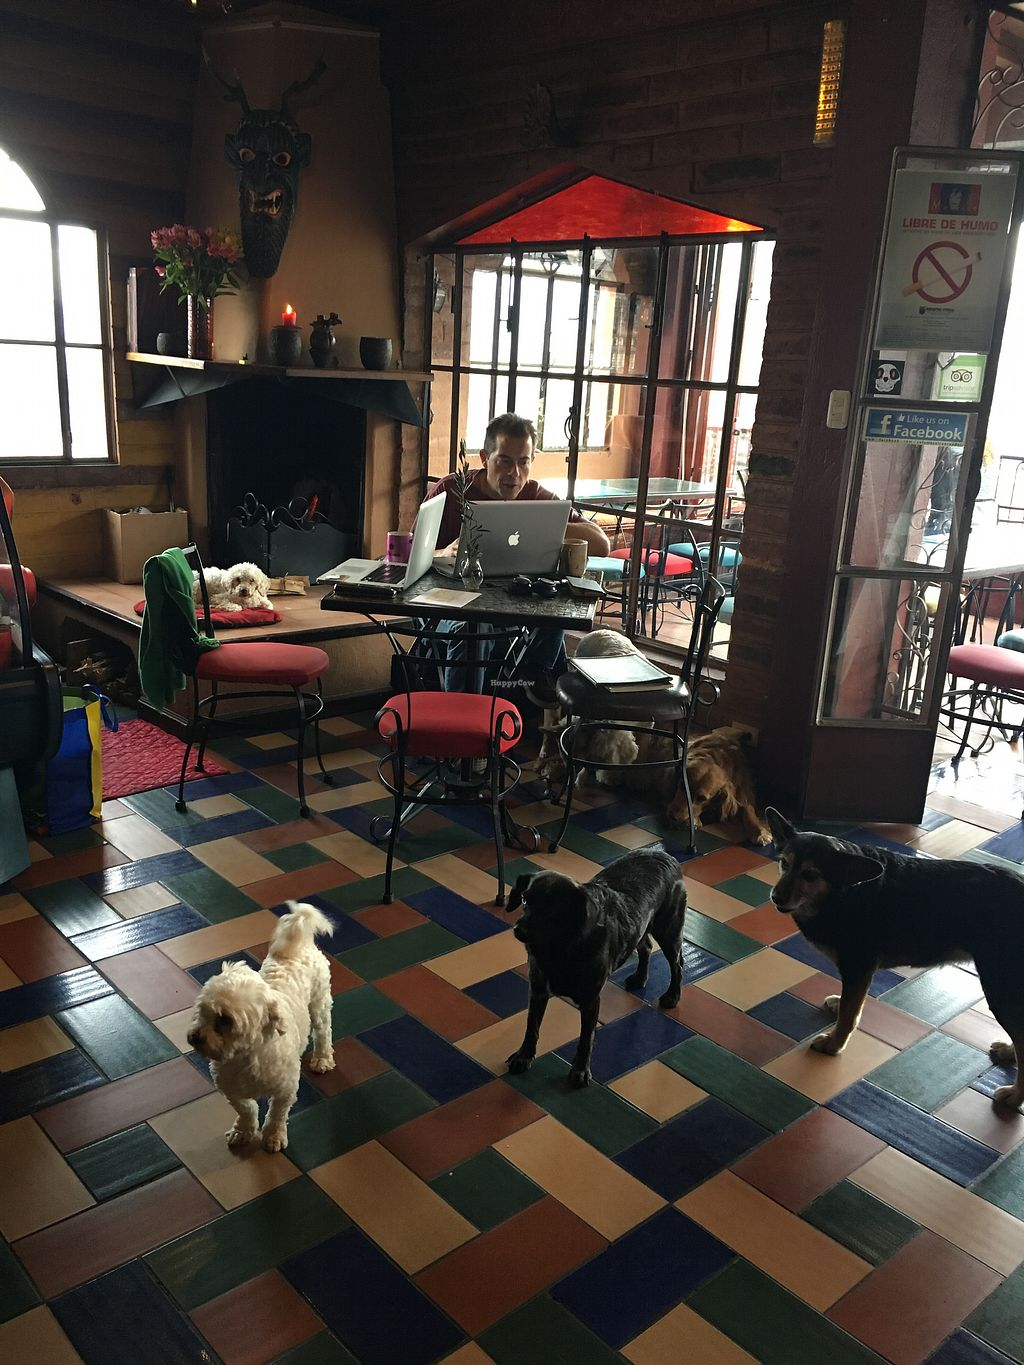 """Photo of Cafe Mosaico  by <a href=""""/members/profile/DianaGodoy"""">DianaGodoy</a> <br/>cafe Mosaico is Petfriendly! <br/> September 25, 2017  - <a href='/contact/abuse/image/101578/308087'>Report</a>"""